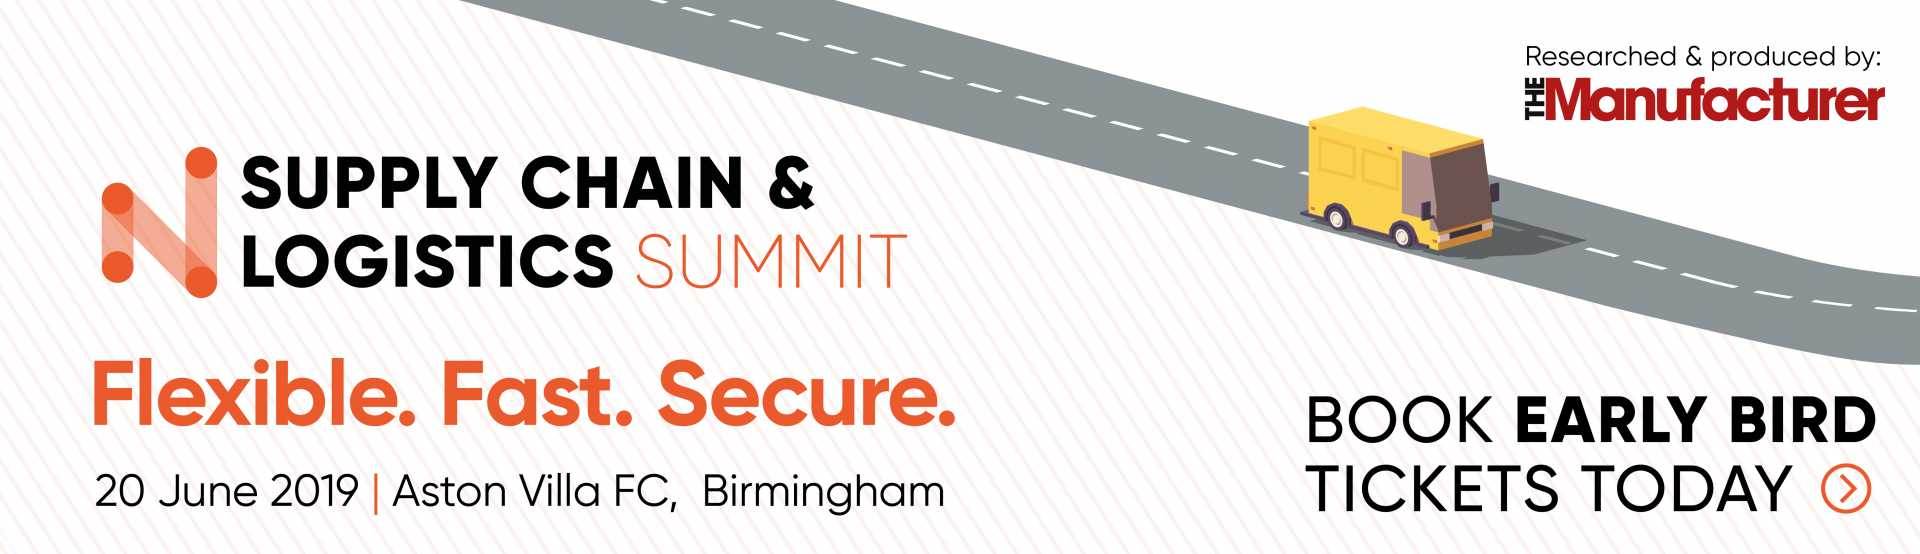 Supply Chain & Logistics Summit 2019 - Early Bird Banner